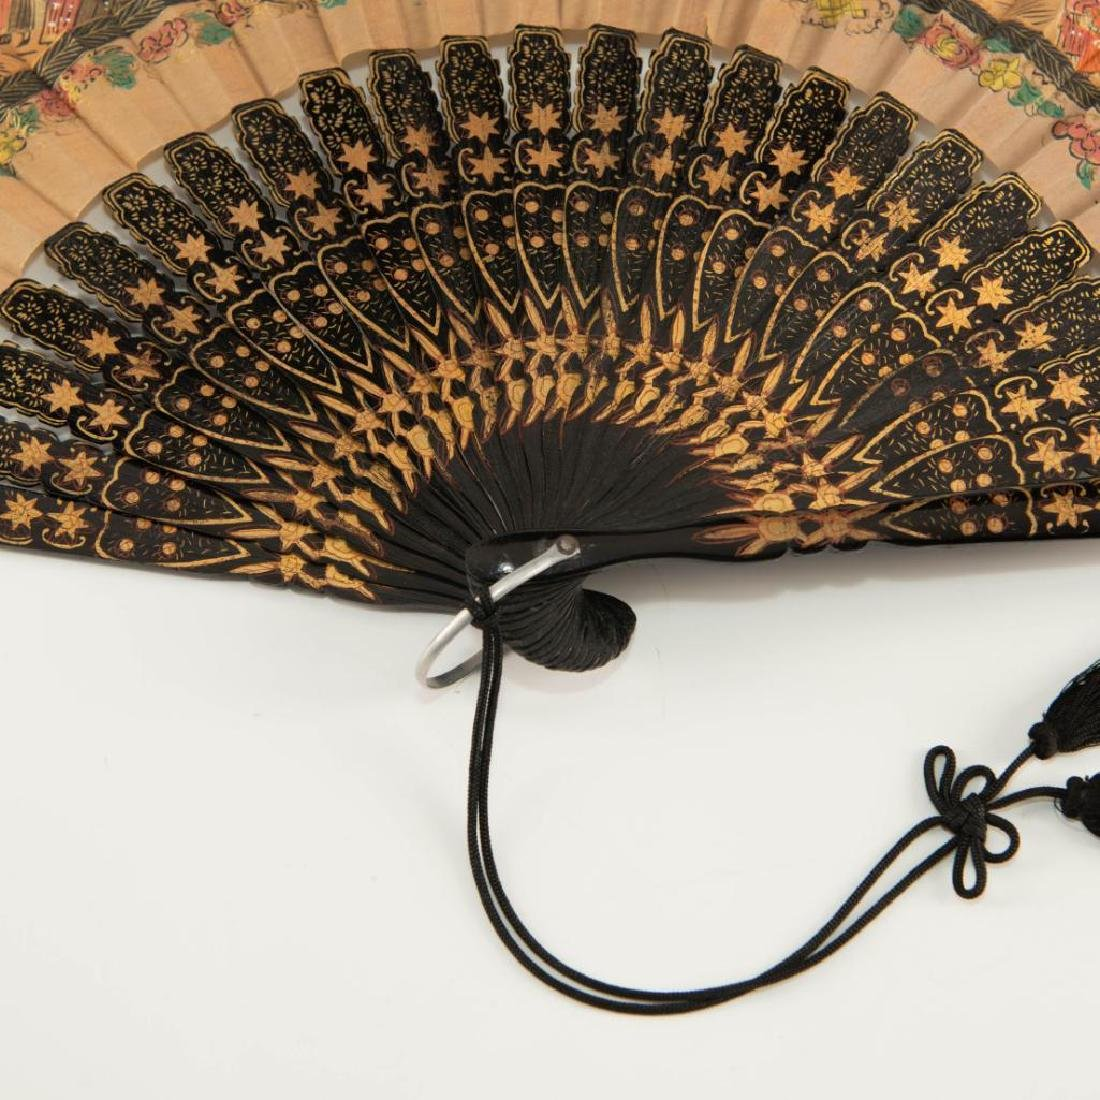 ANTIQUE CHINESE HAND PAINTED BLACK LACQUER FOLDING FAN - 9